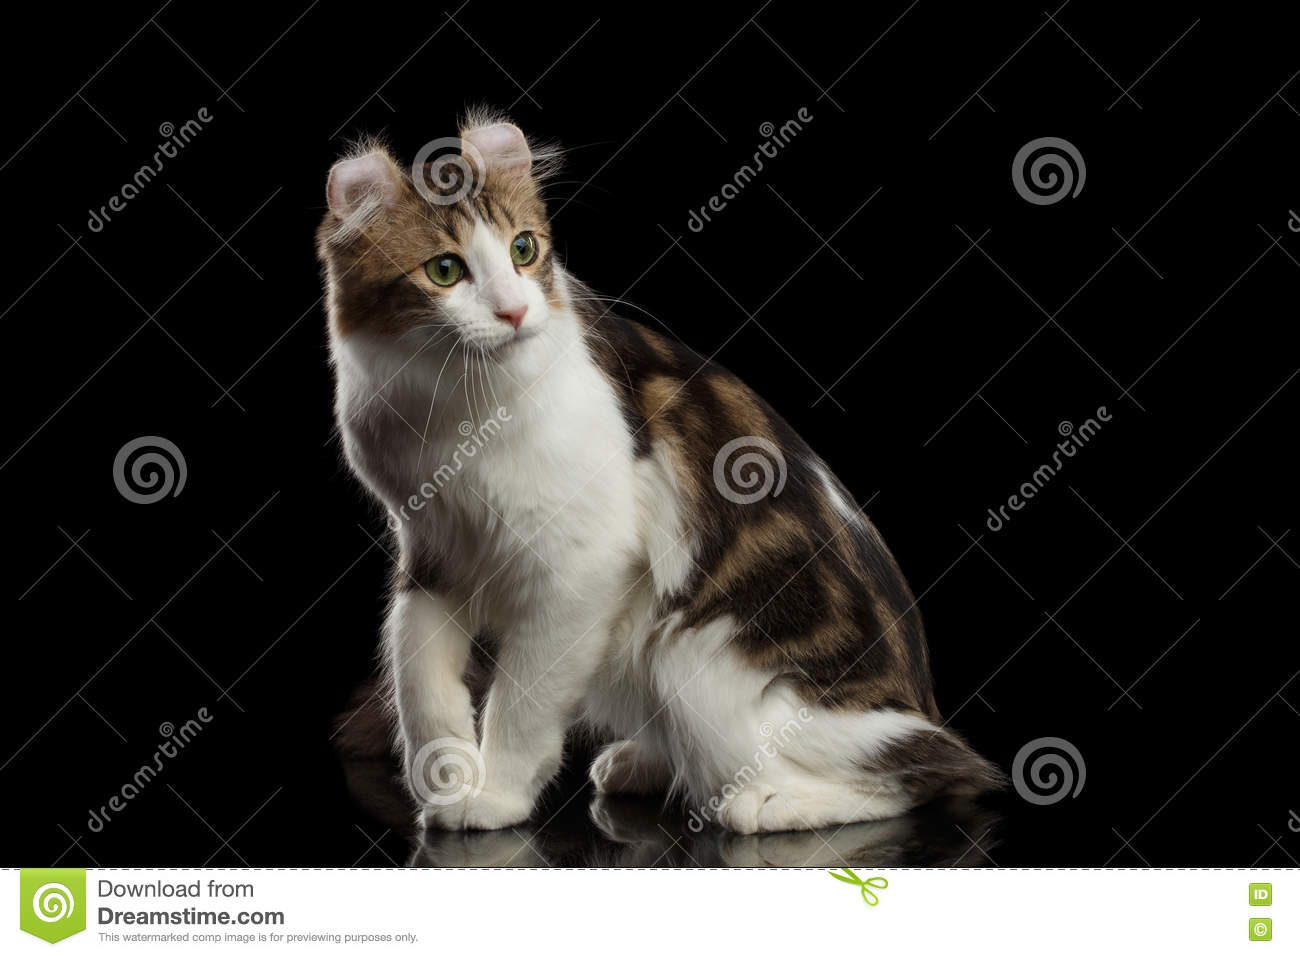 American Curl Cat Breed, Sitting on Black Isolated background